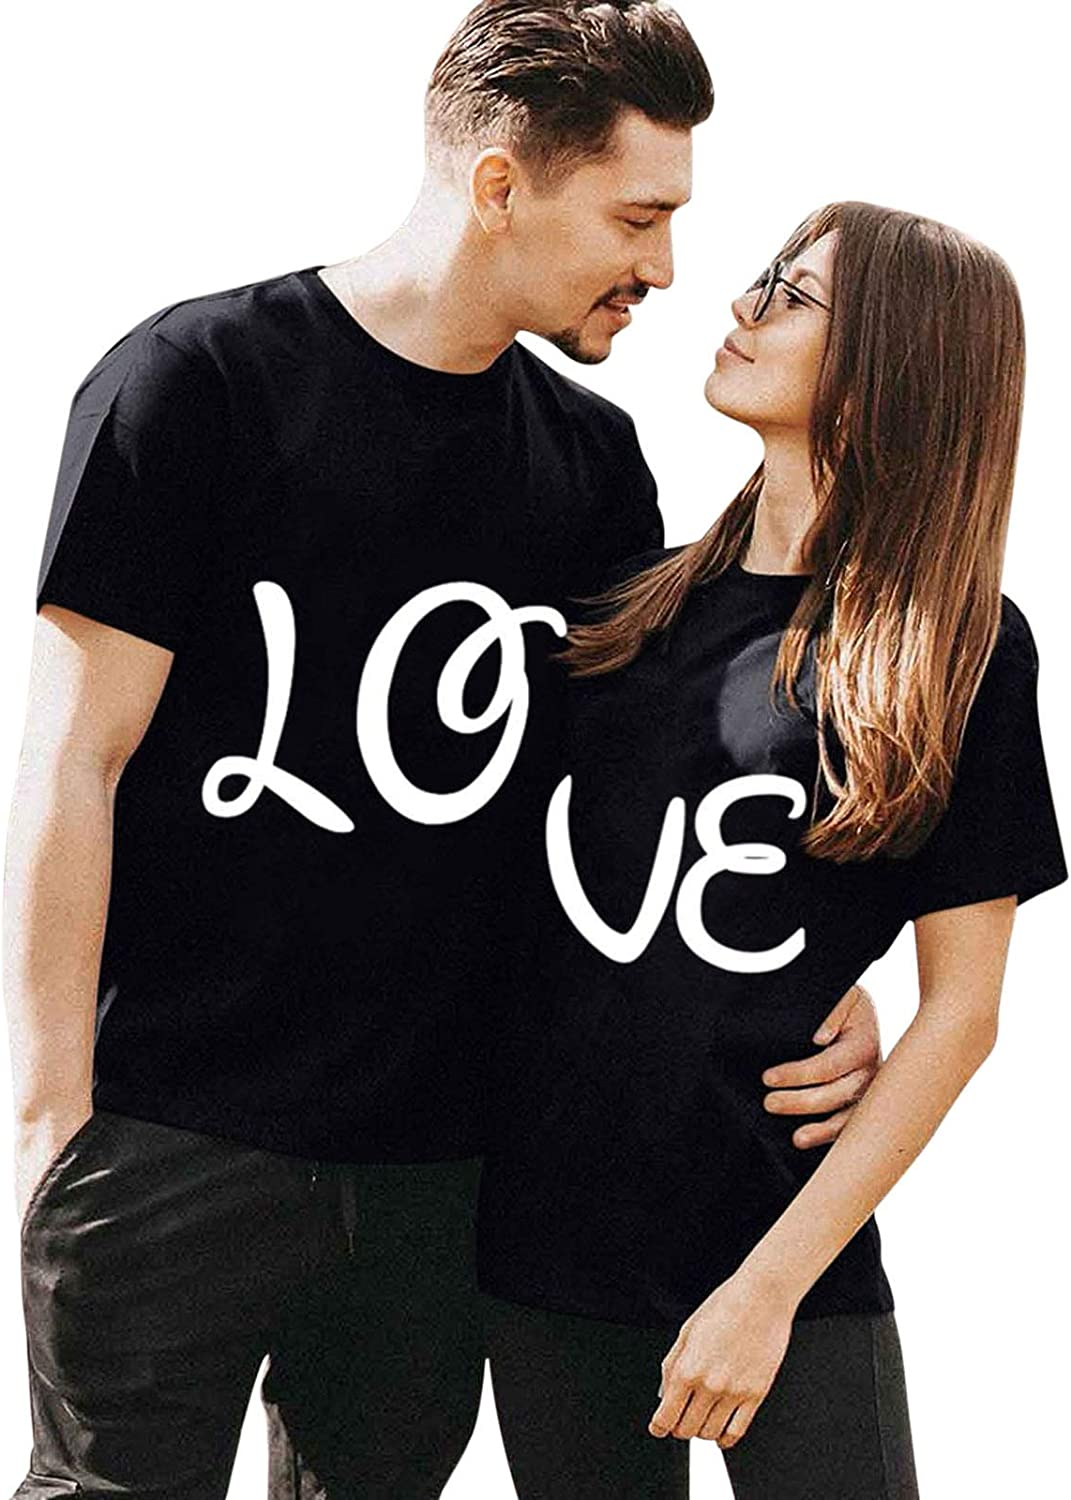 Valentine Graphic Tees Couple Matching Shirts Short Sleeve Heart Printed T-Shirt Blouse Tops Clothes for Men Women